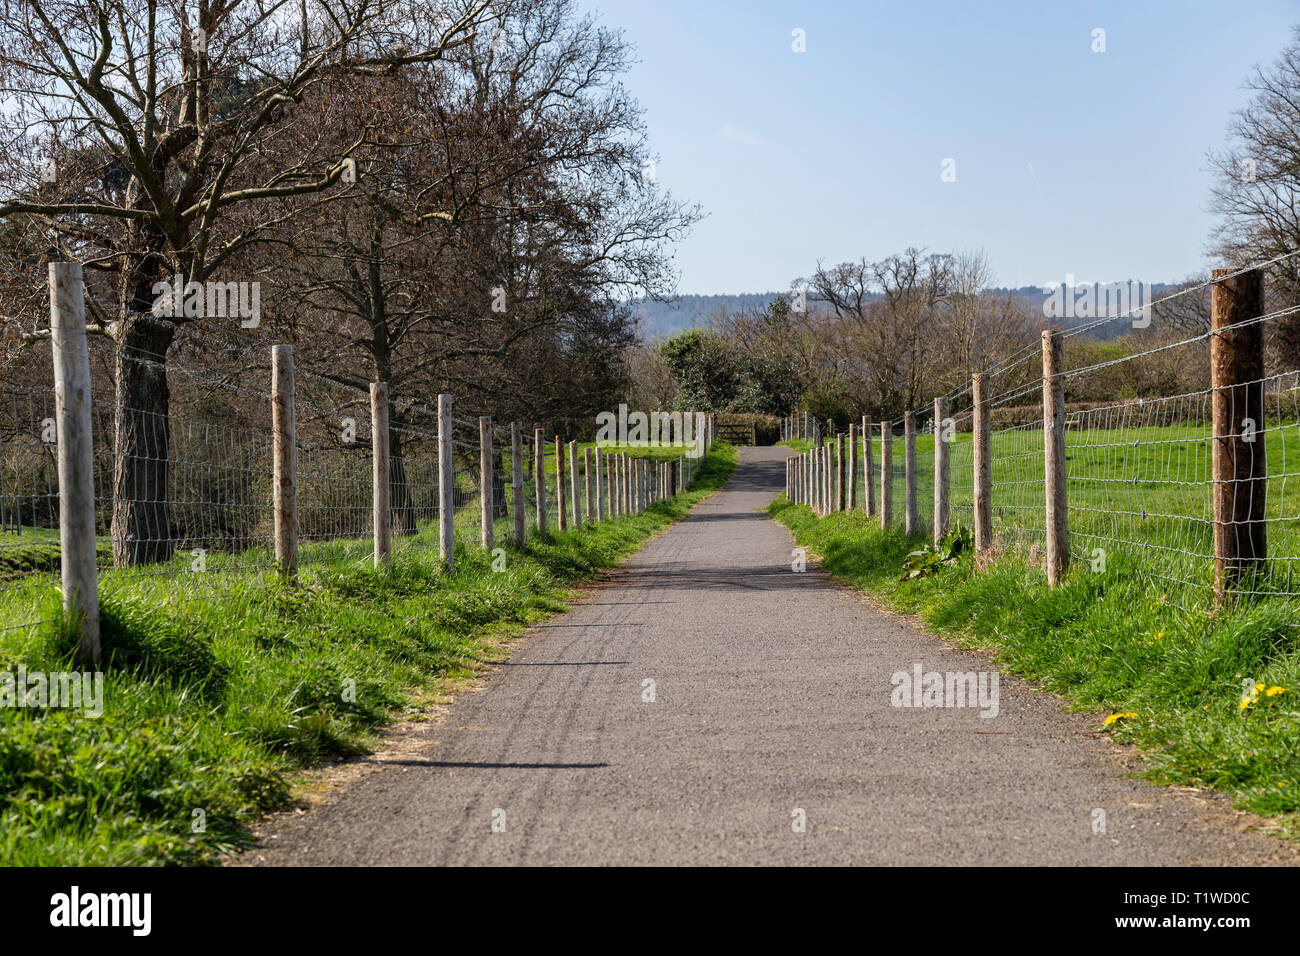 A long tarmac footpath with tall fence posts to both sides. Stock Photo